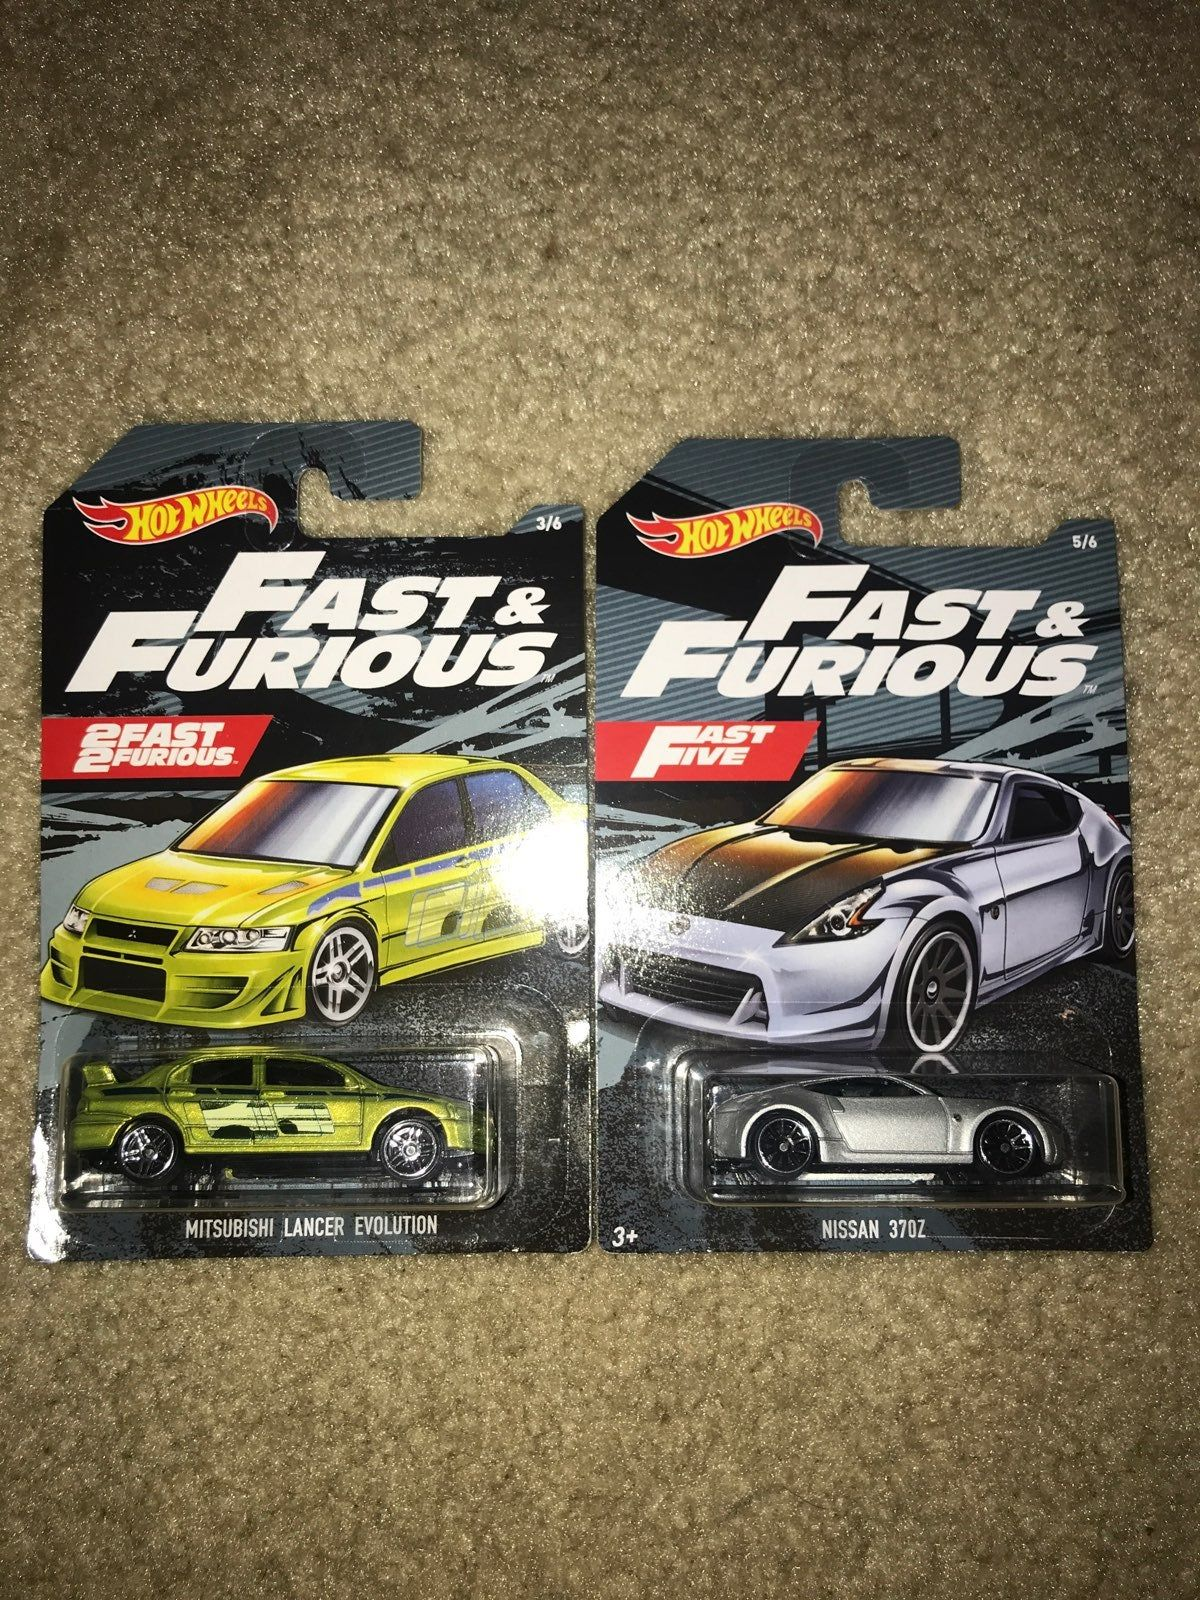 Hot Wheels Fast and Furious Mitsubishi Lancer Evolution